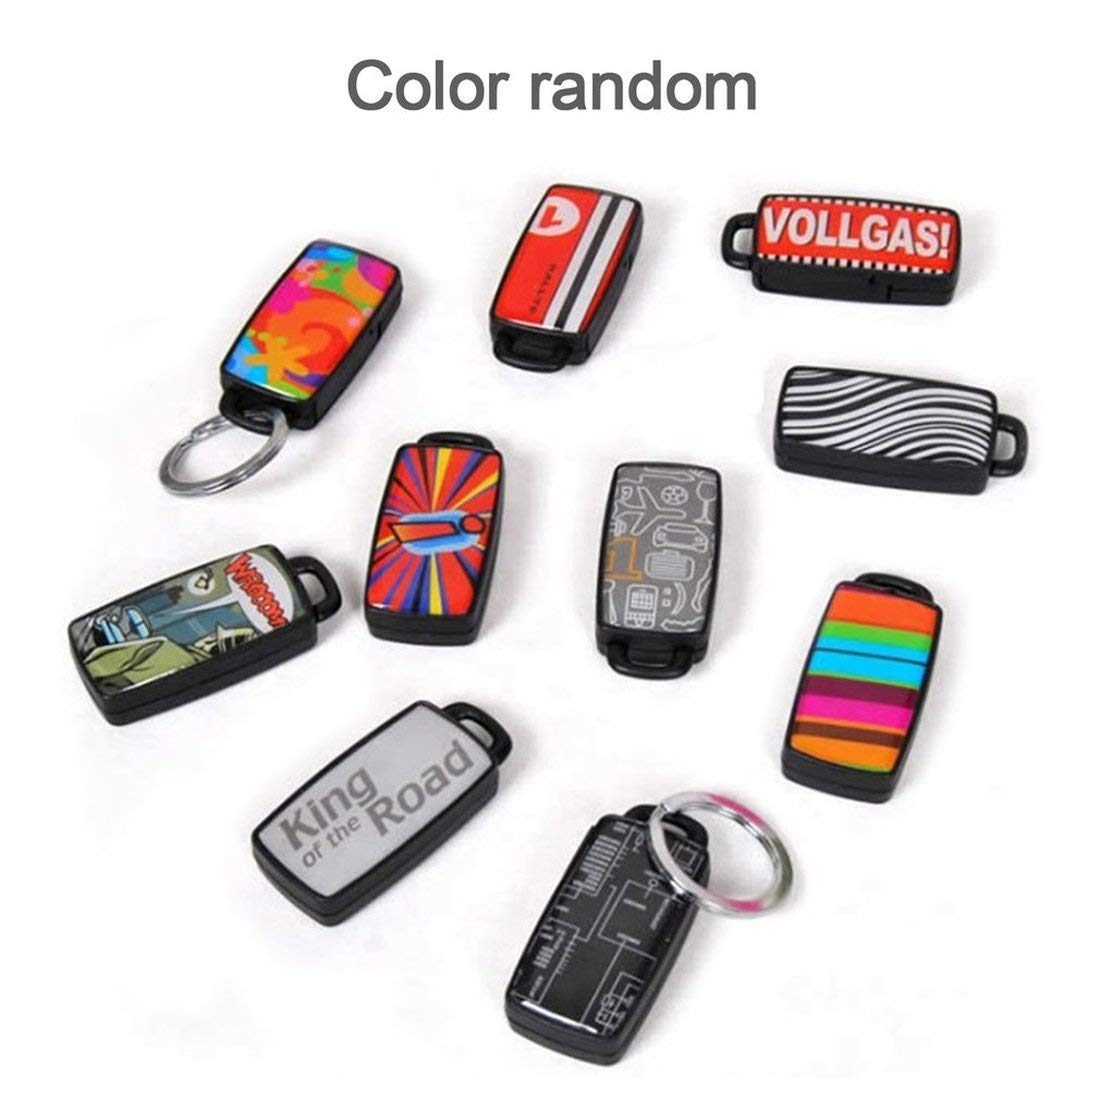 Stylish Whistle Key Finder Beeping Sound Alarm Portable Electric Keyfinder Locator with Keyring Anti-Lost Device Formulaone